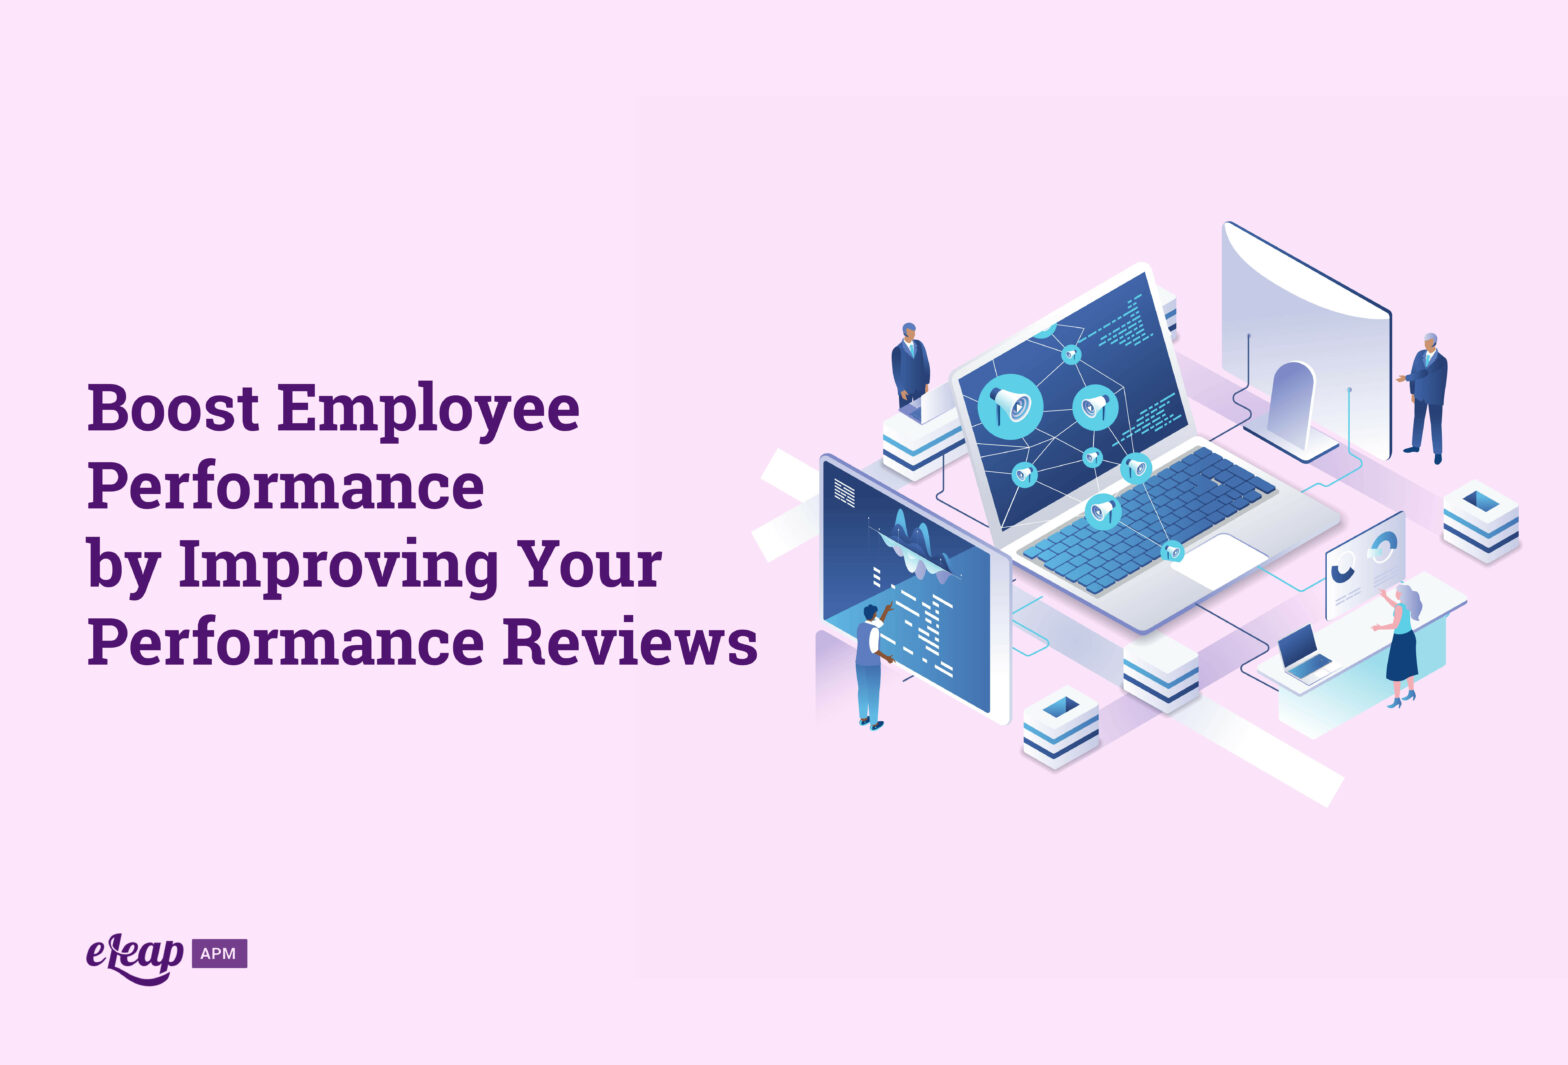 Boost Employee Performance by Improving Your Performance Reviews